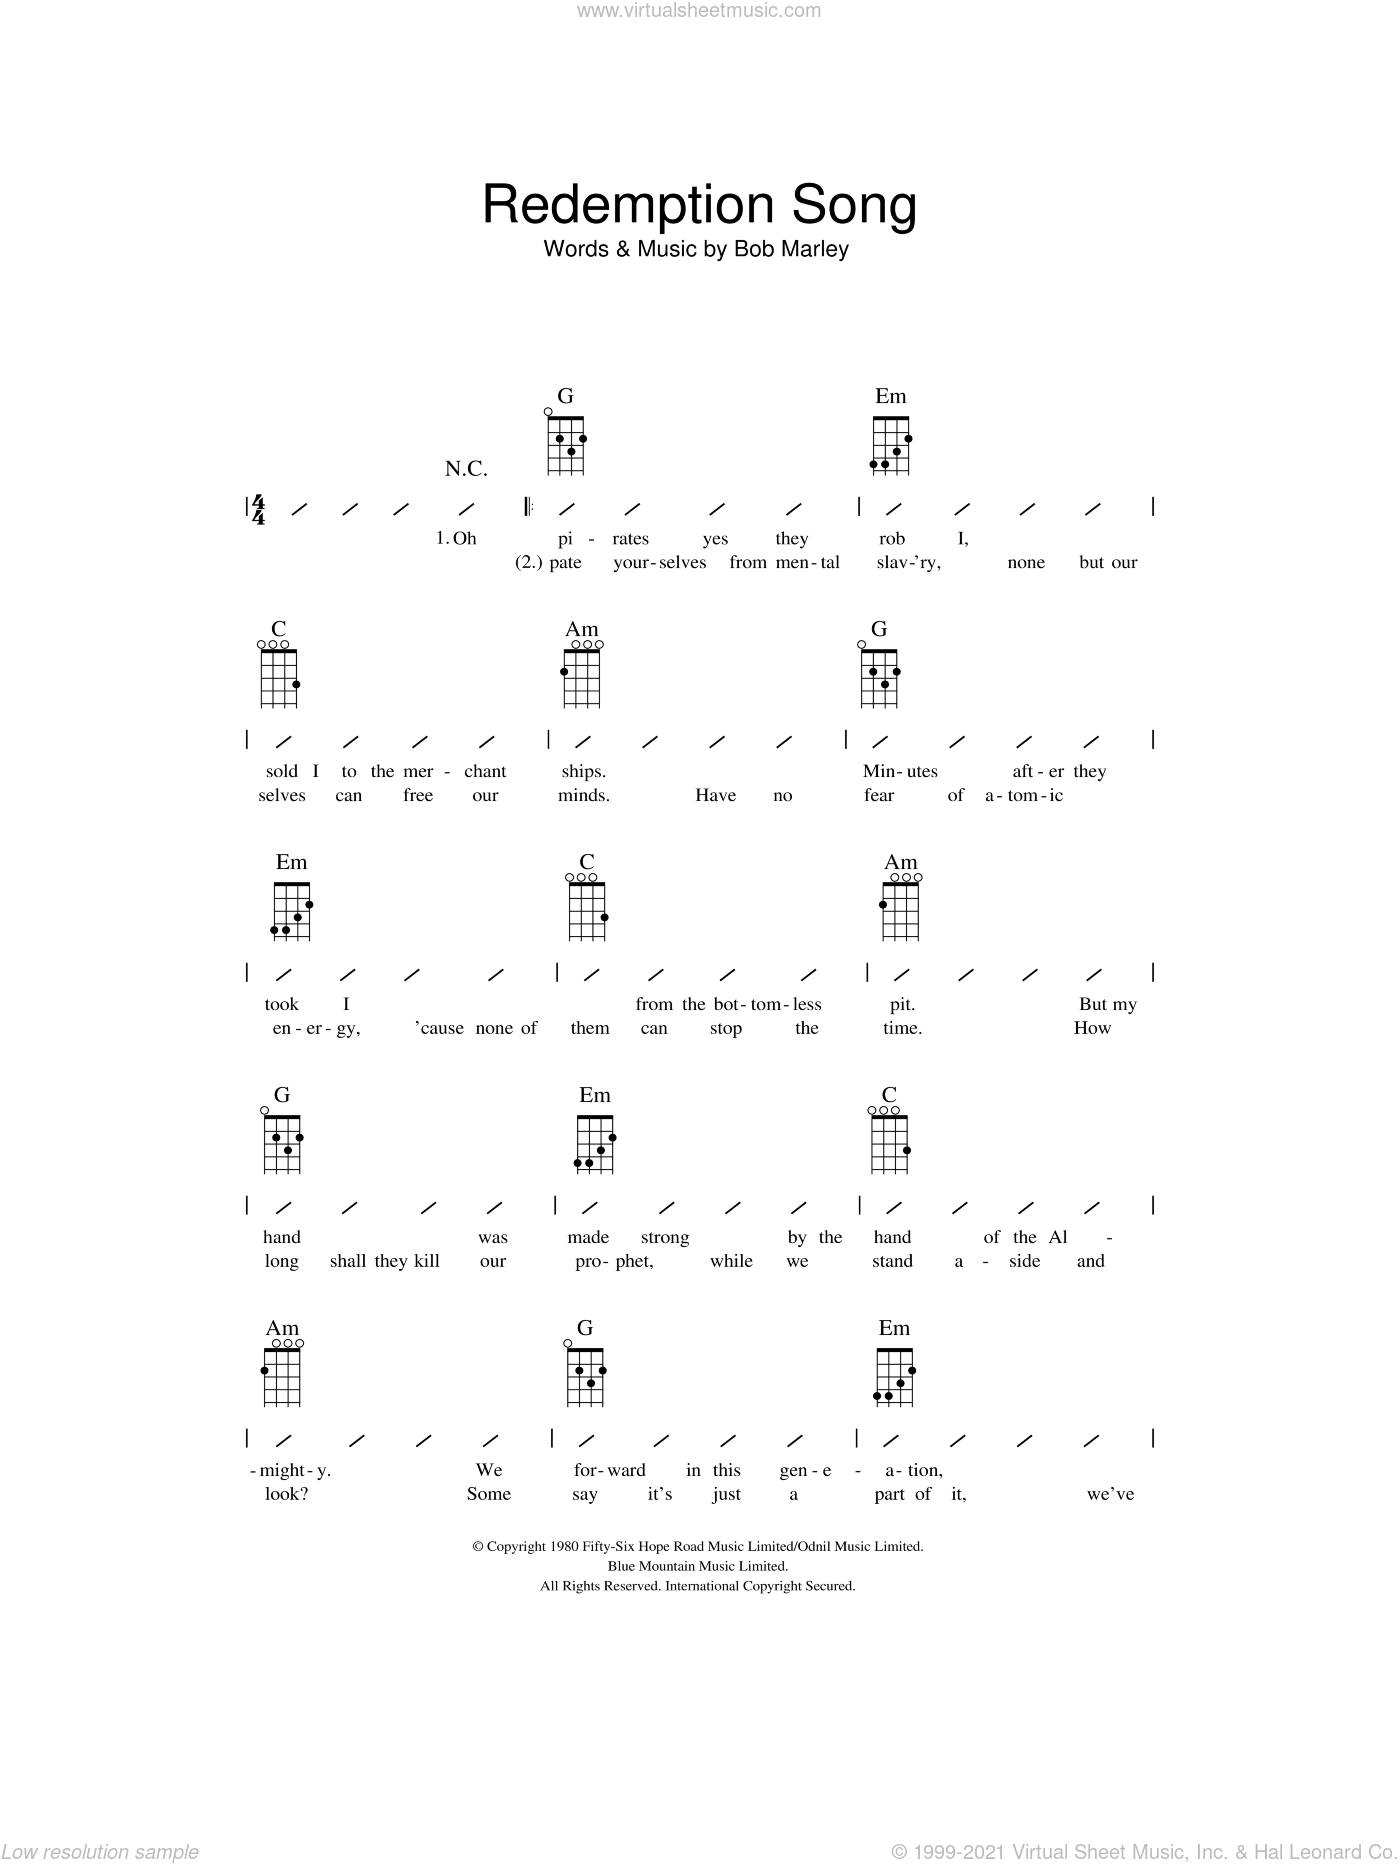 Redemption Song sheet music for ukulele (chords) by Bob Marley